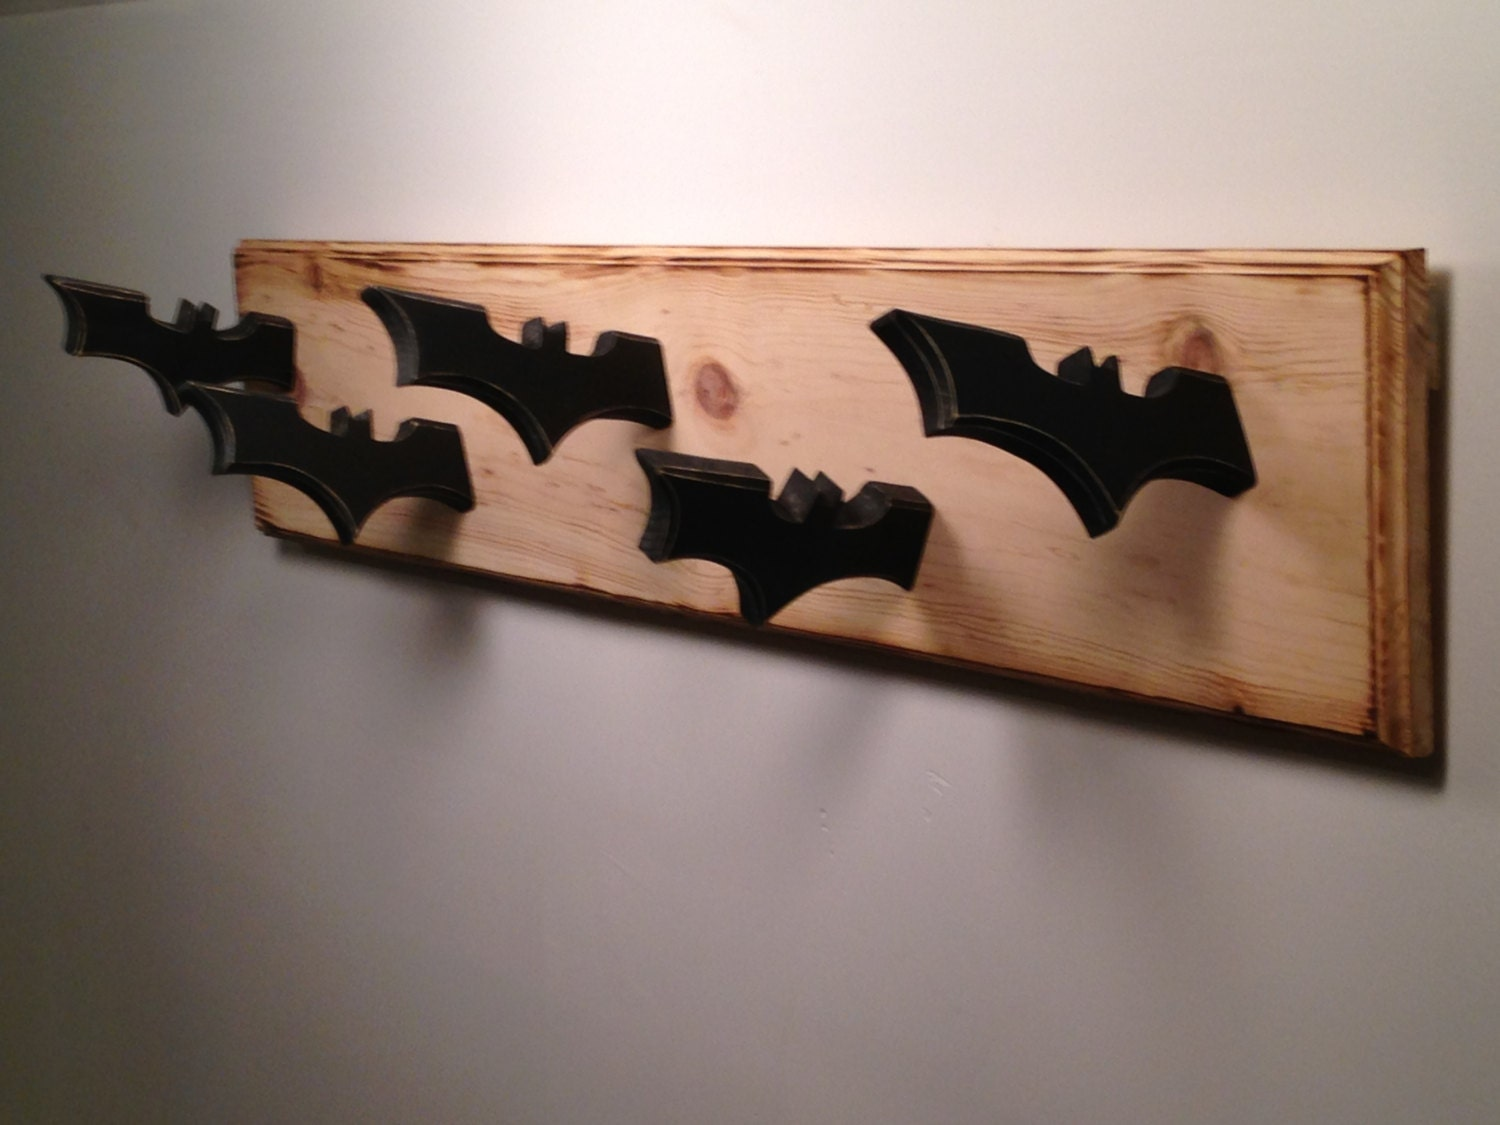 Ideas For Hanging Backpacks Batman Inspired Coat Rack Walled Mounted Dark Knight Themed